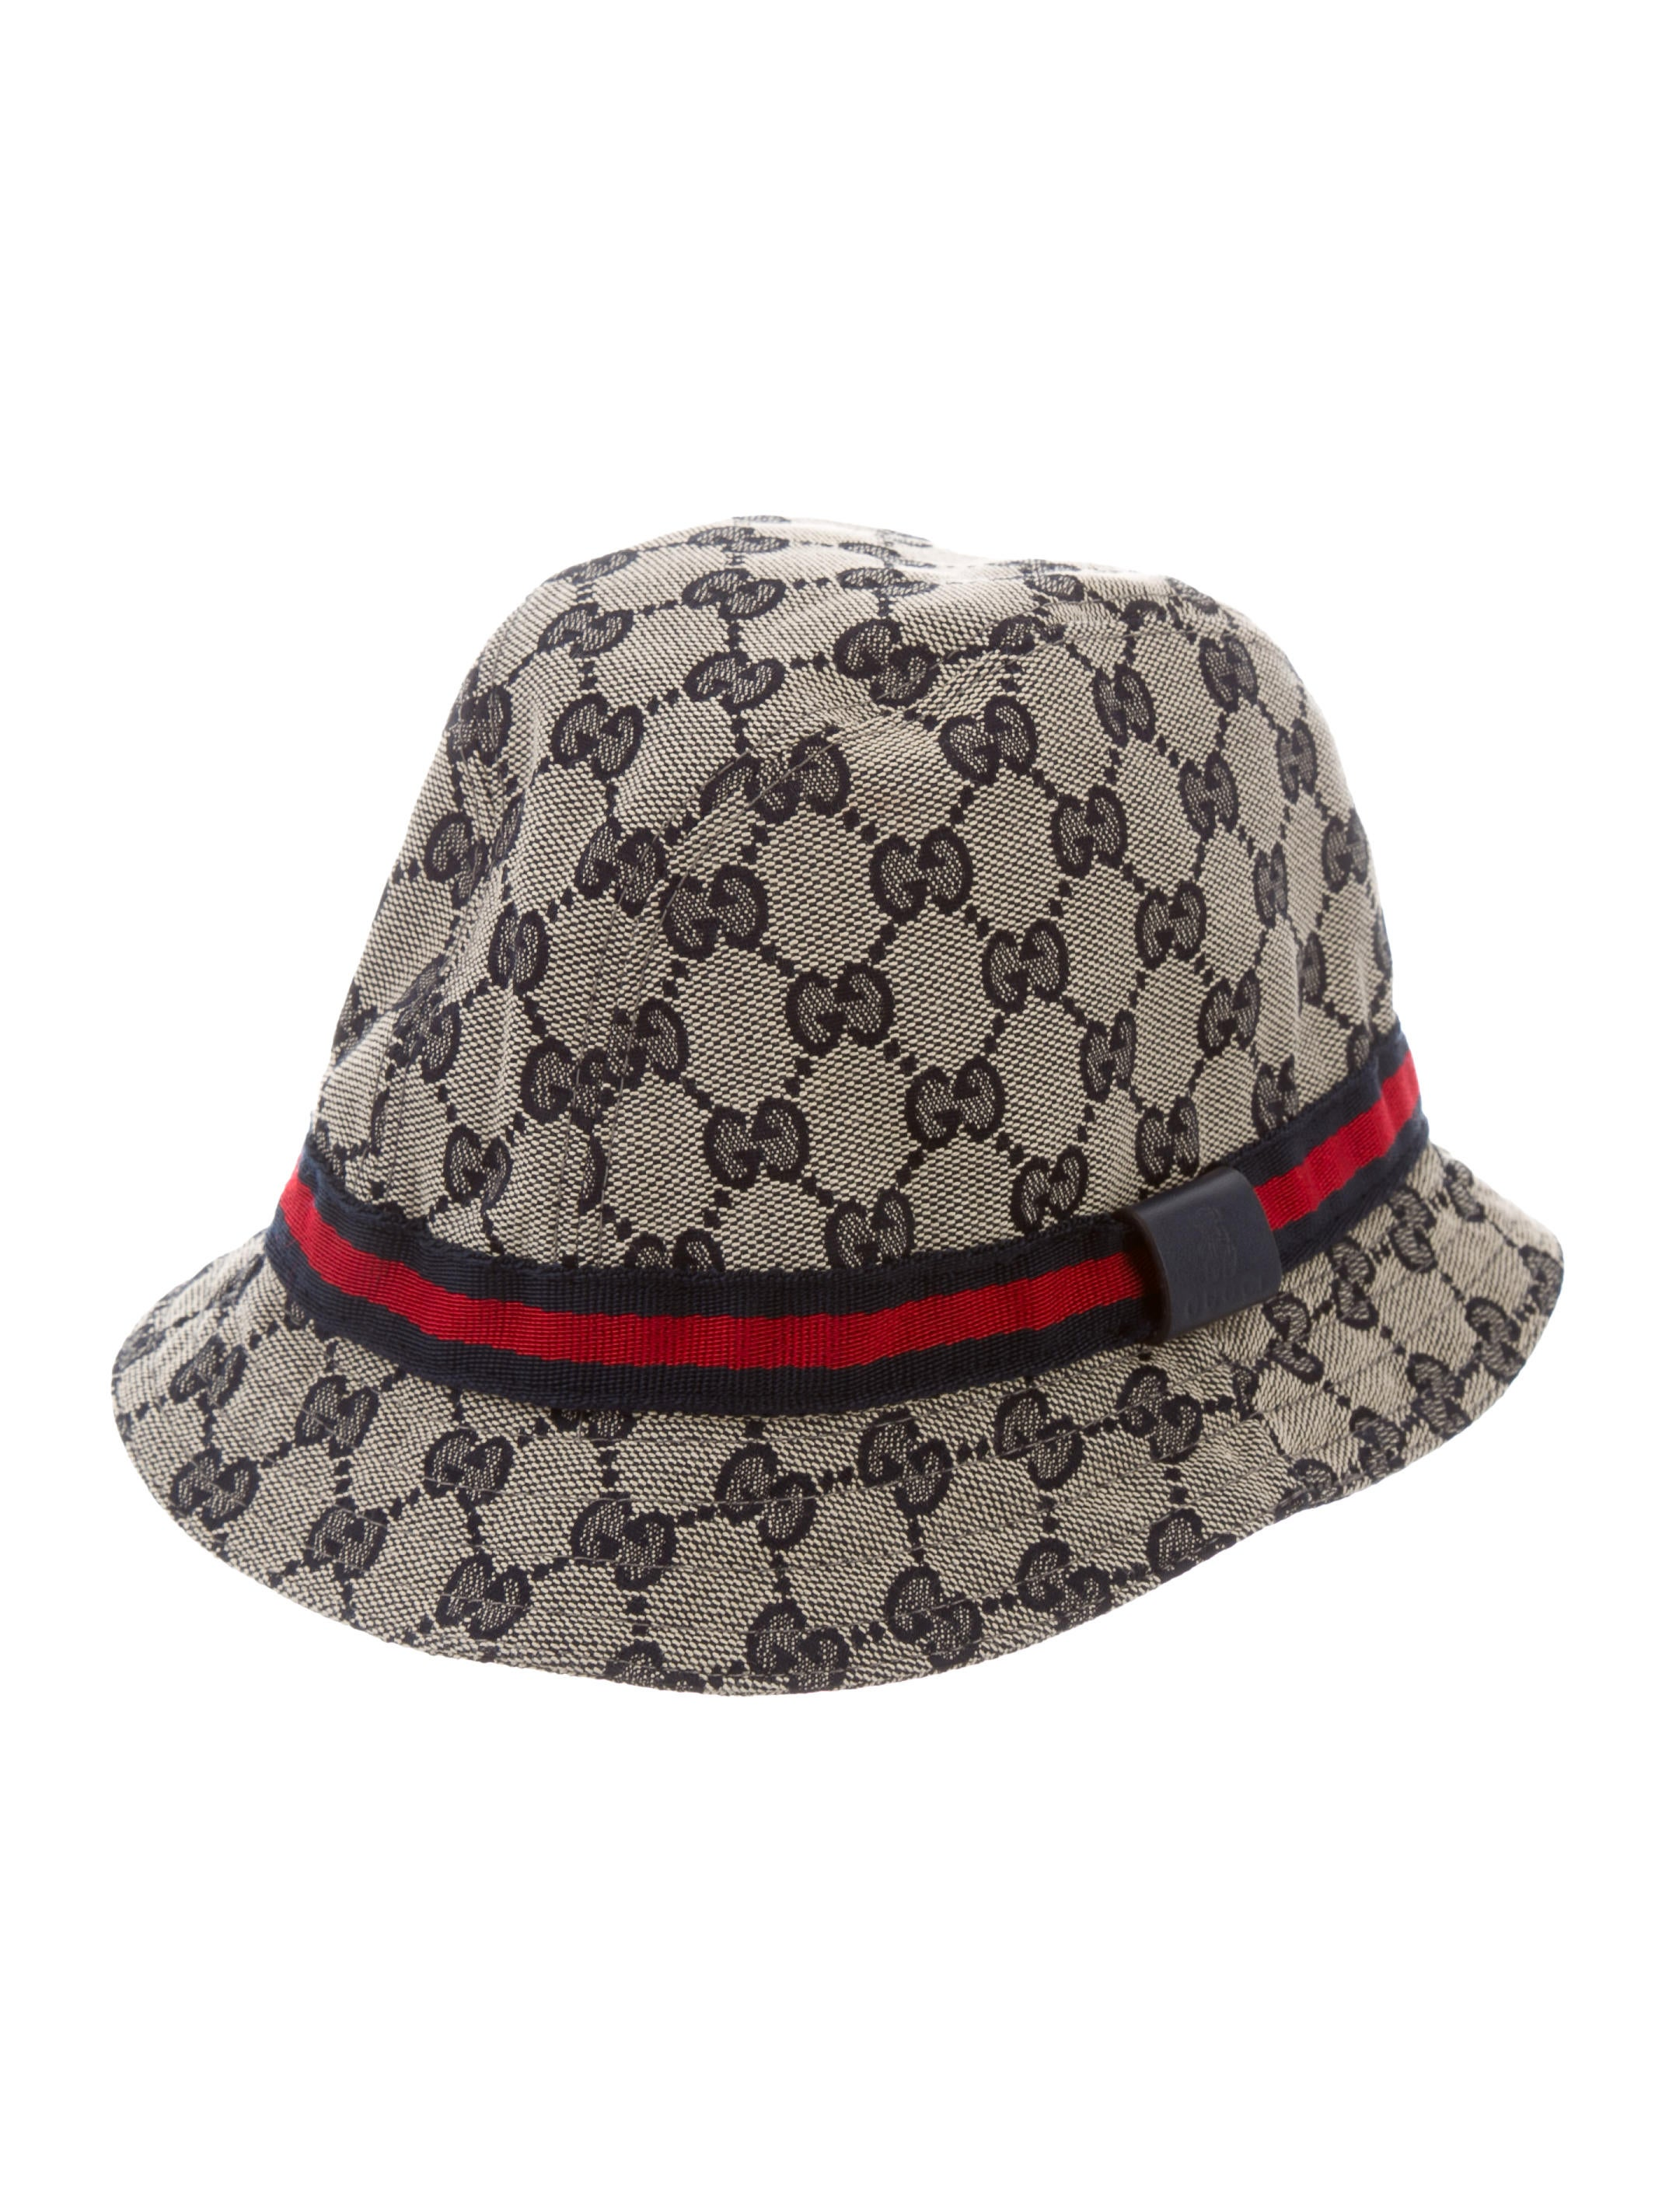 Gucci Girls  GG Canvas Hat - Girls - GUC210623  71f64936985